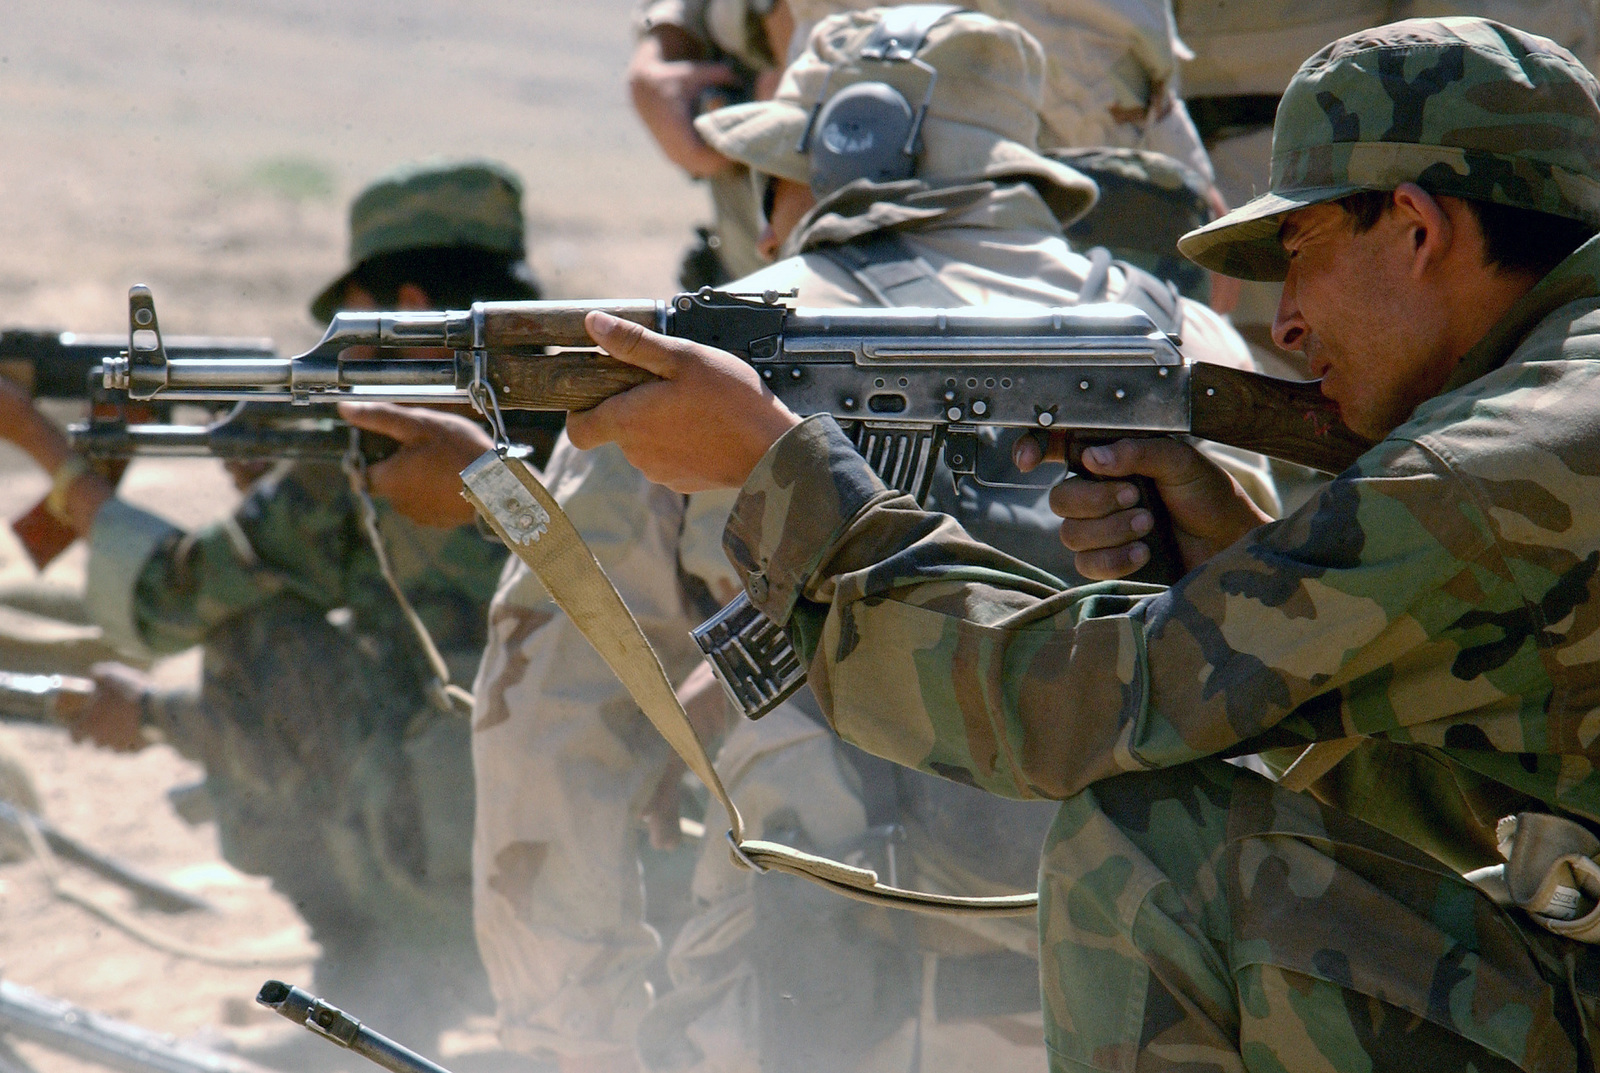 New recruits in the Afghanistan National Army (ANA) fire their 7.62mm AK-47 assault rifles